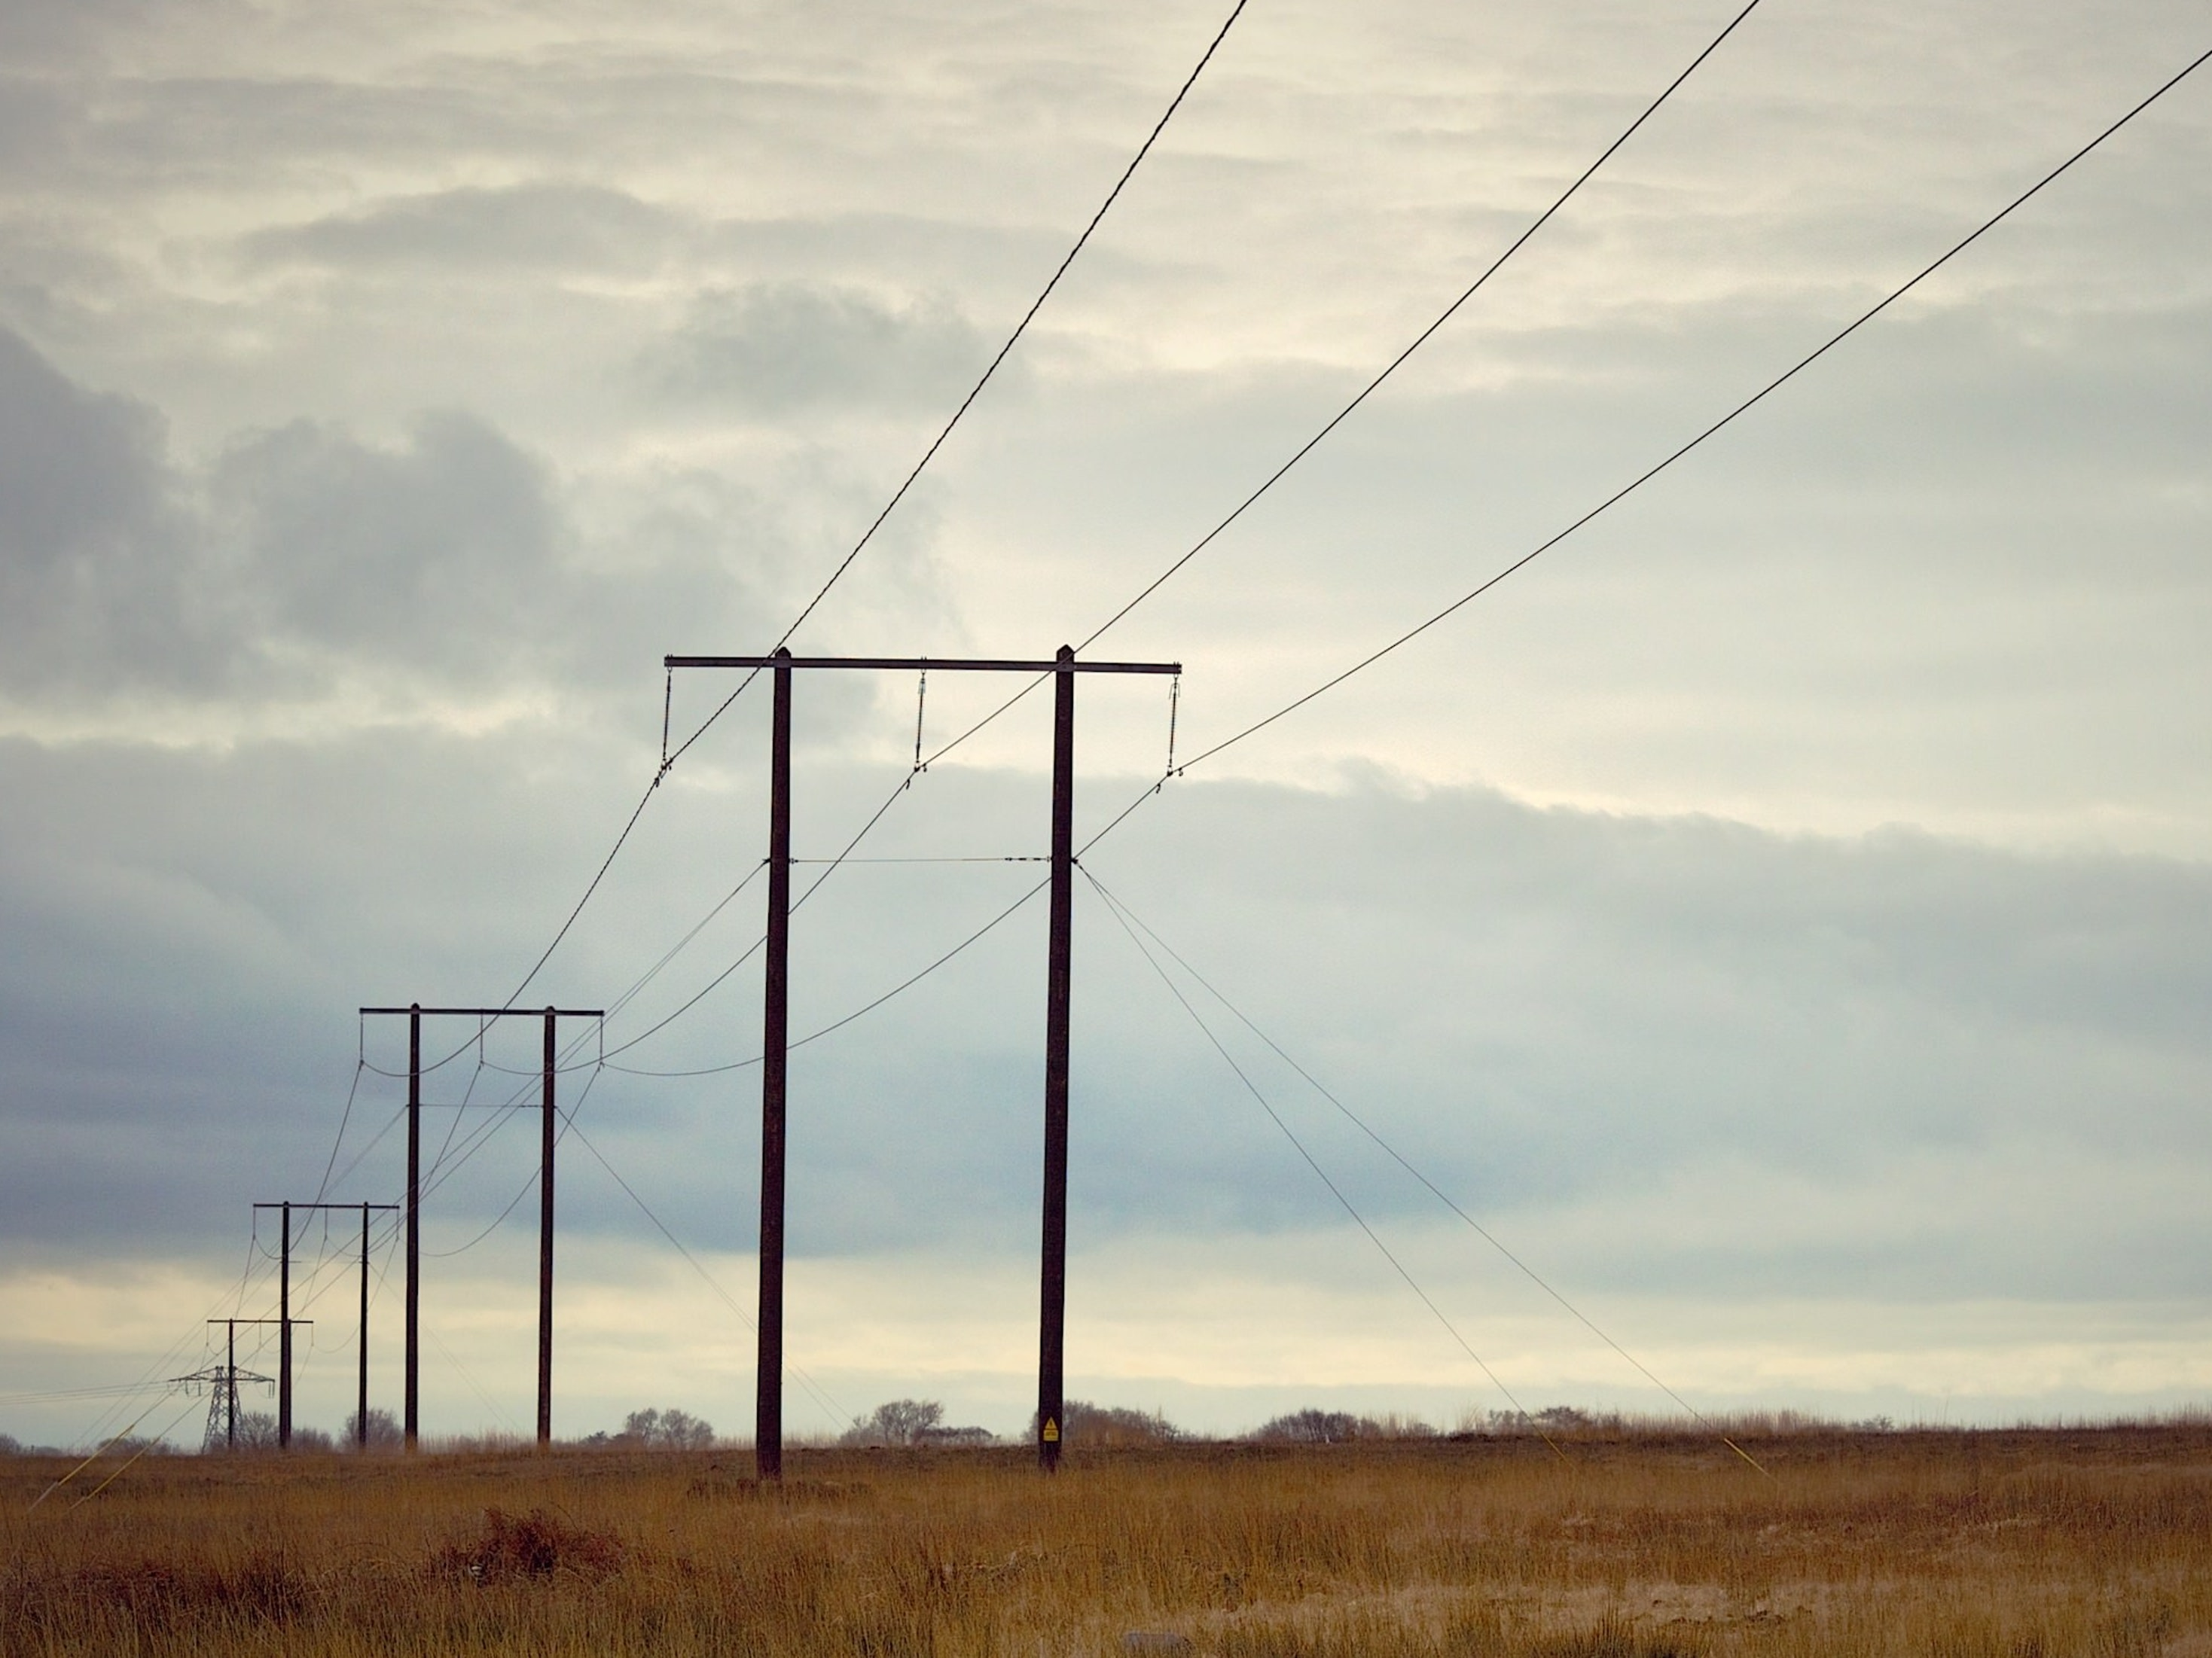 Will Cheap Broadband Actually Make It to Rural America? Here's How It Might Happen